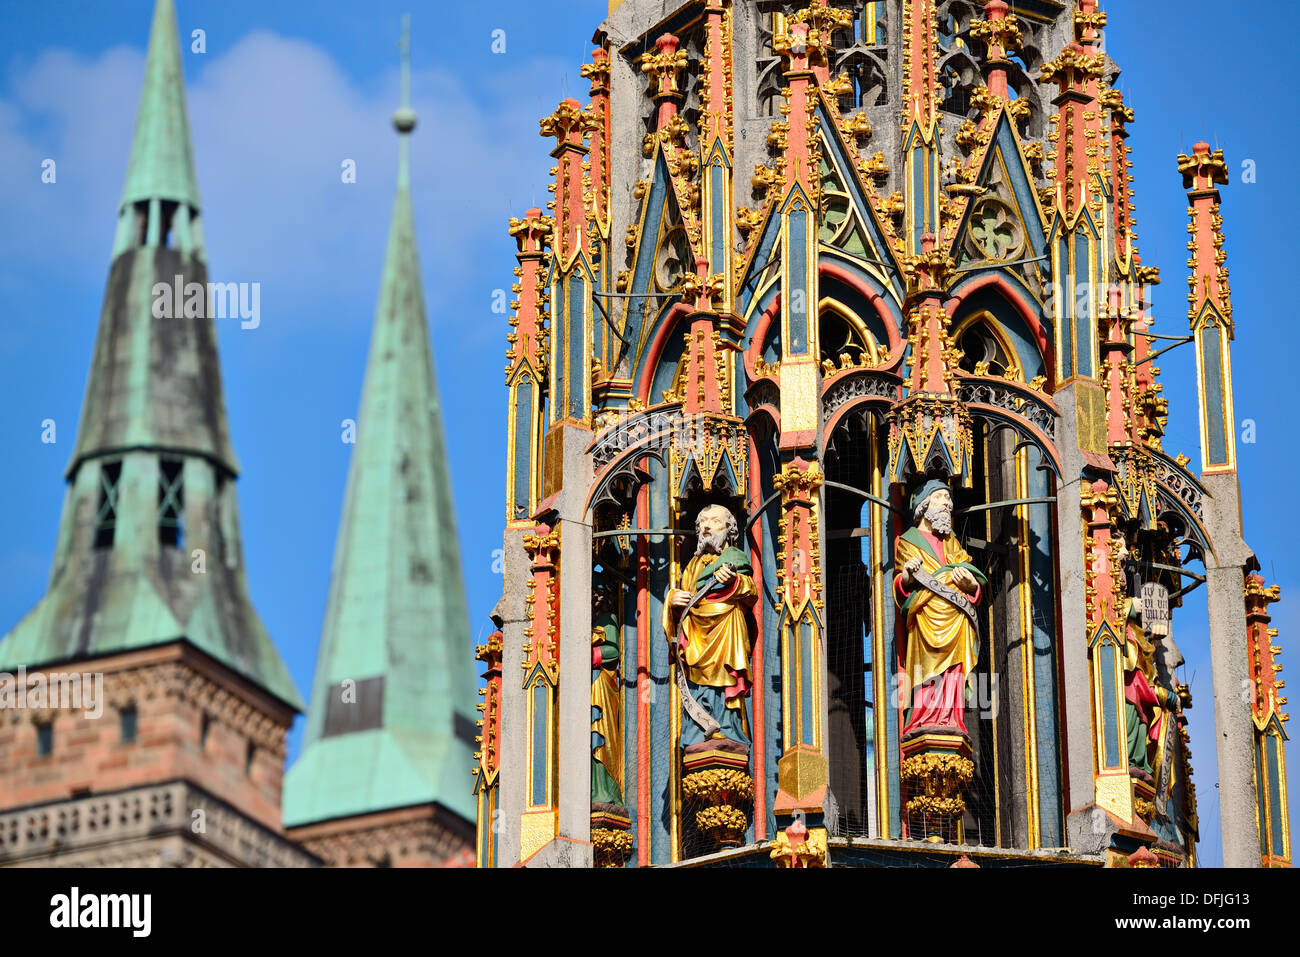 Detail of the Beautiful Fountain in Nuremberg, Germany. - Stock Image